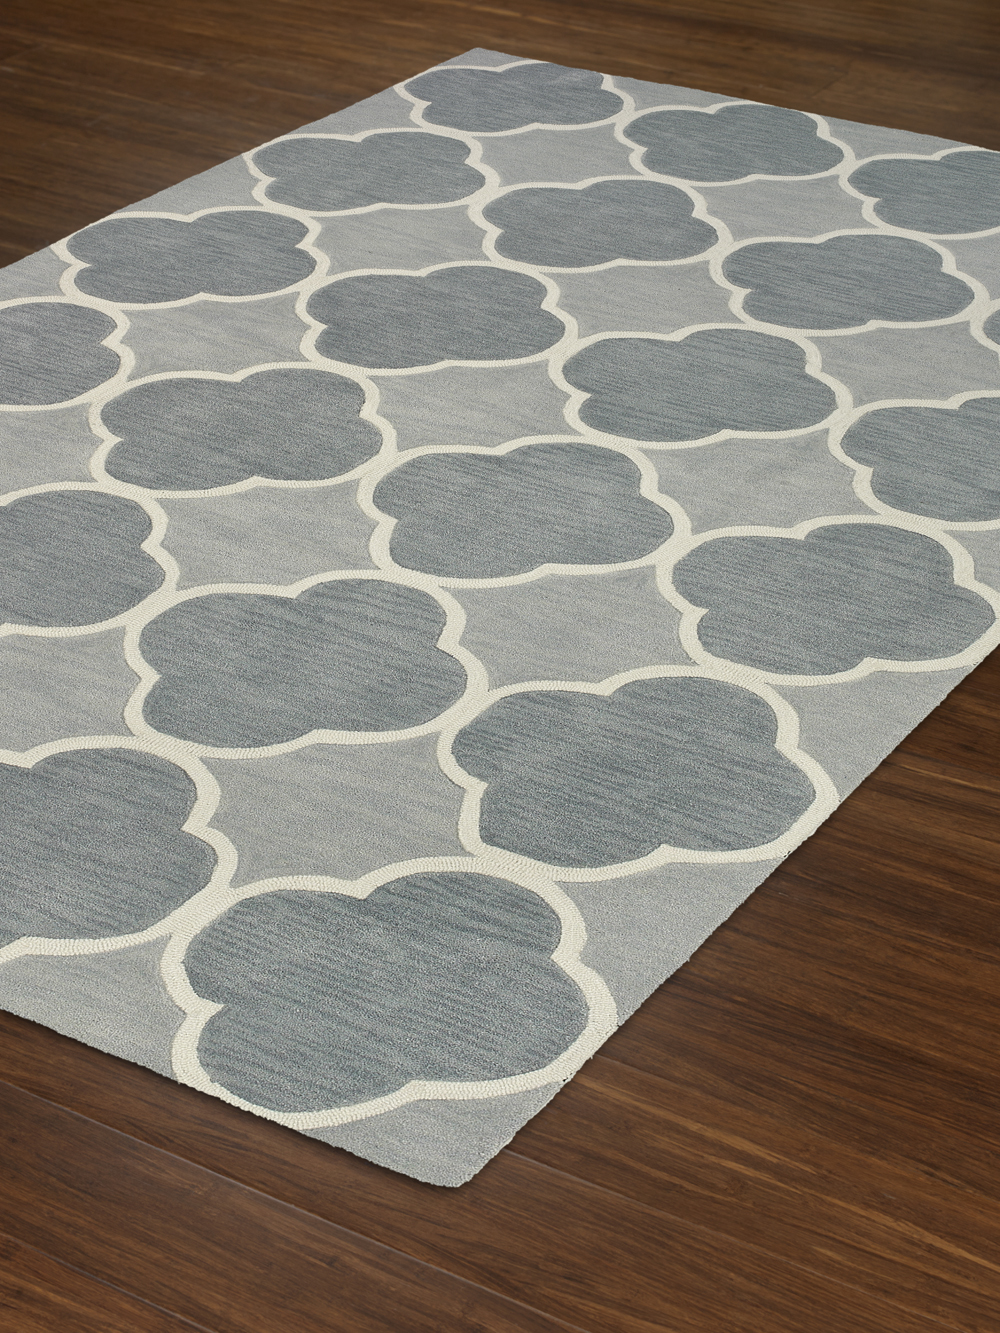 Infinity Sky Poly Acrylic Plush And Loop Pile Rug